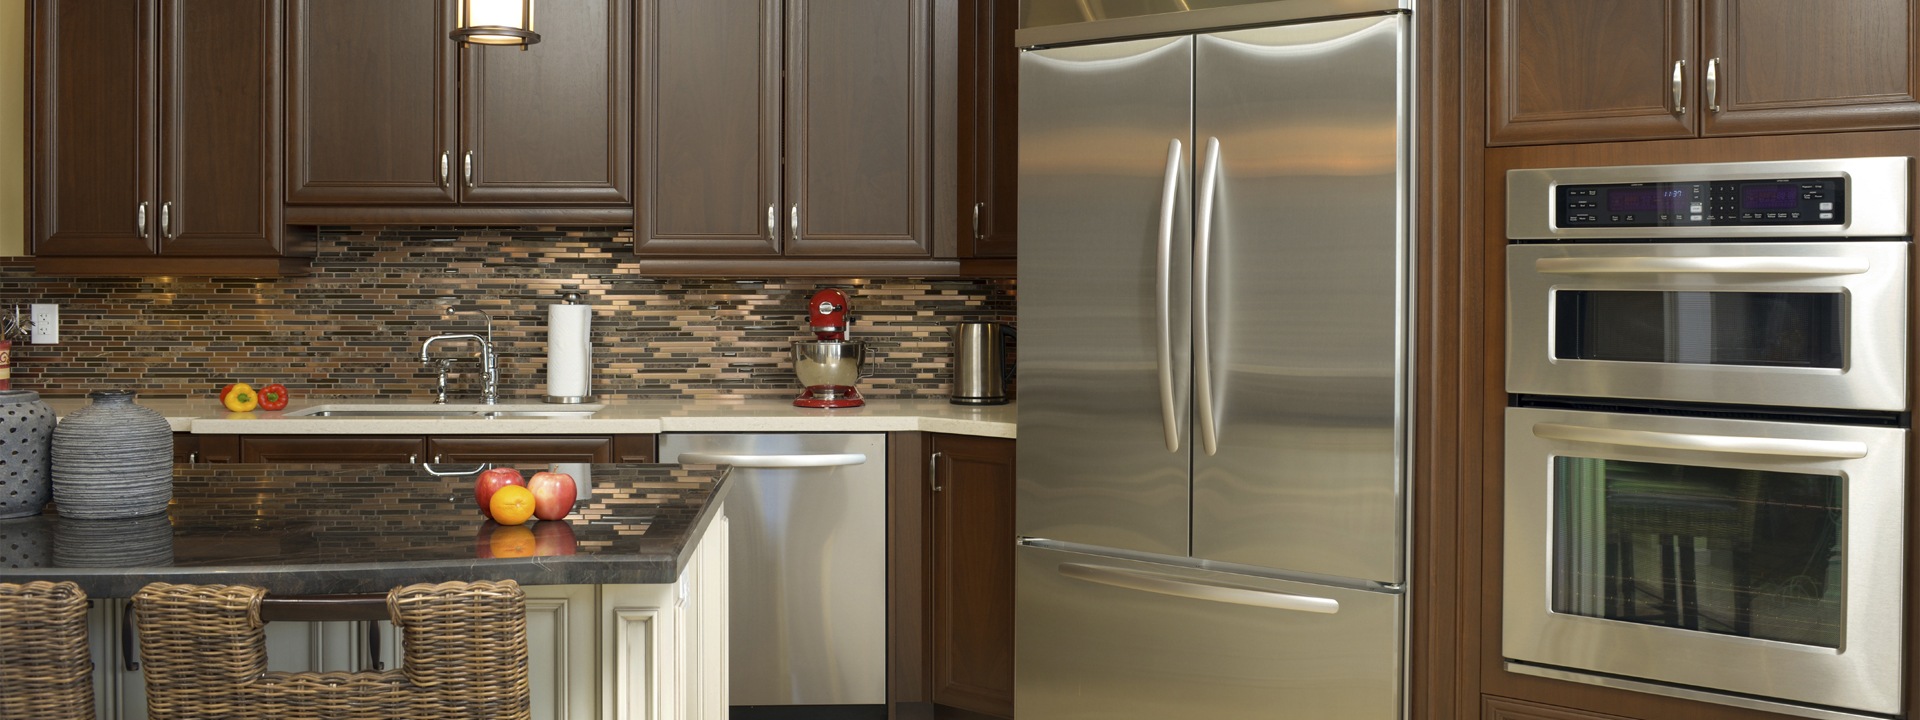 Appliance Repair Houston I A Bbb 7 Years I 25 Off